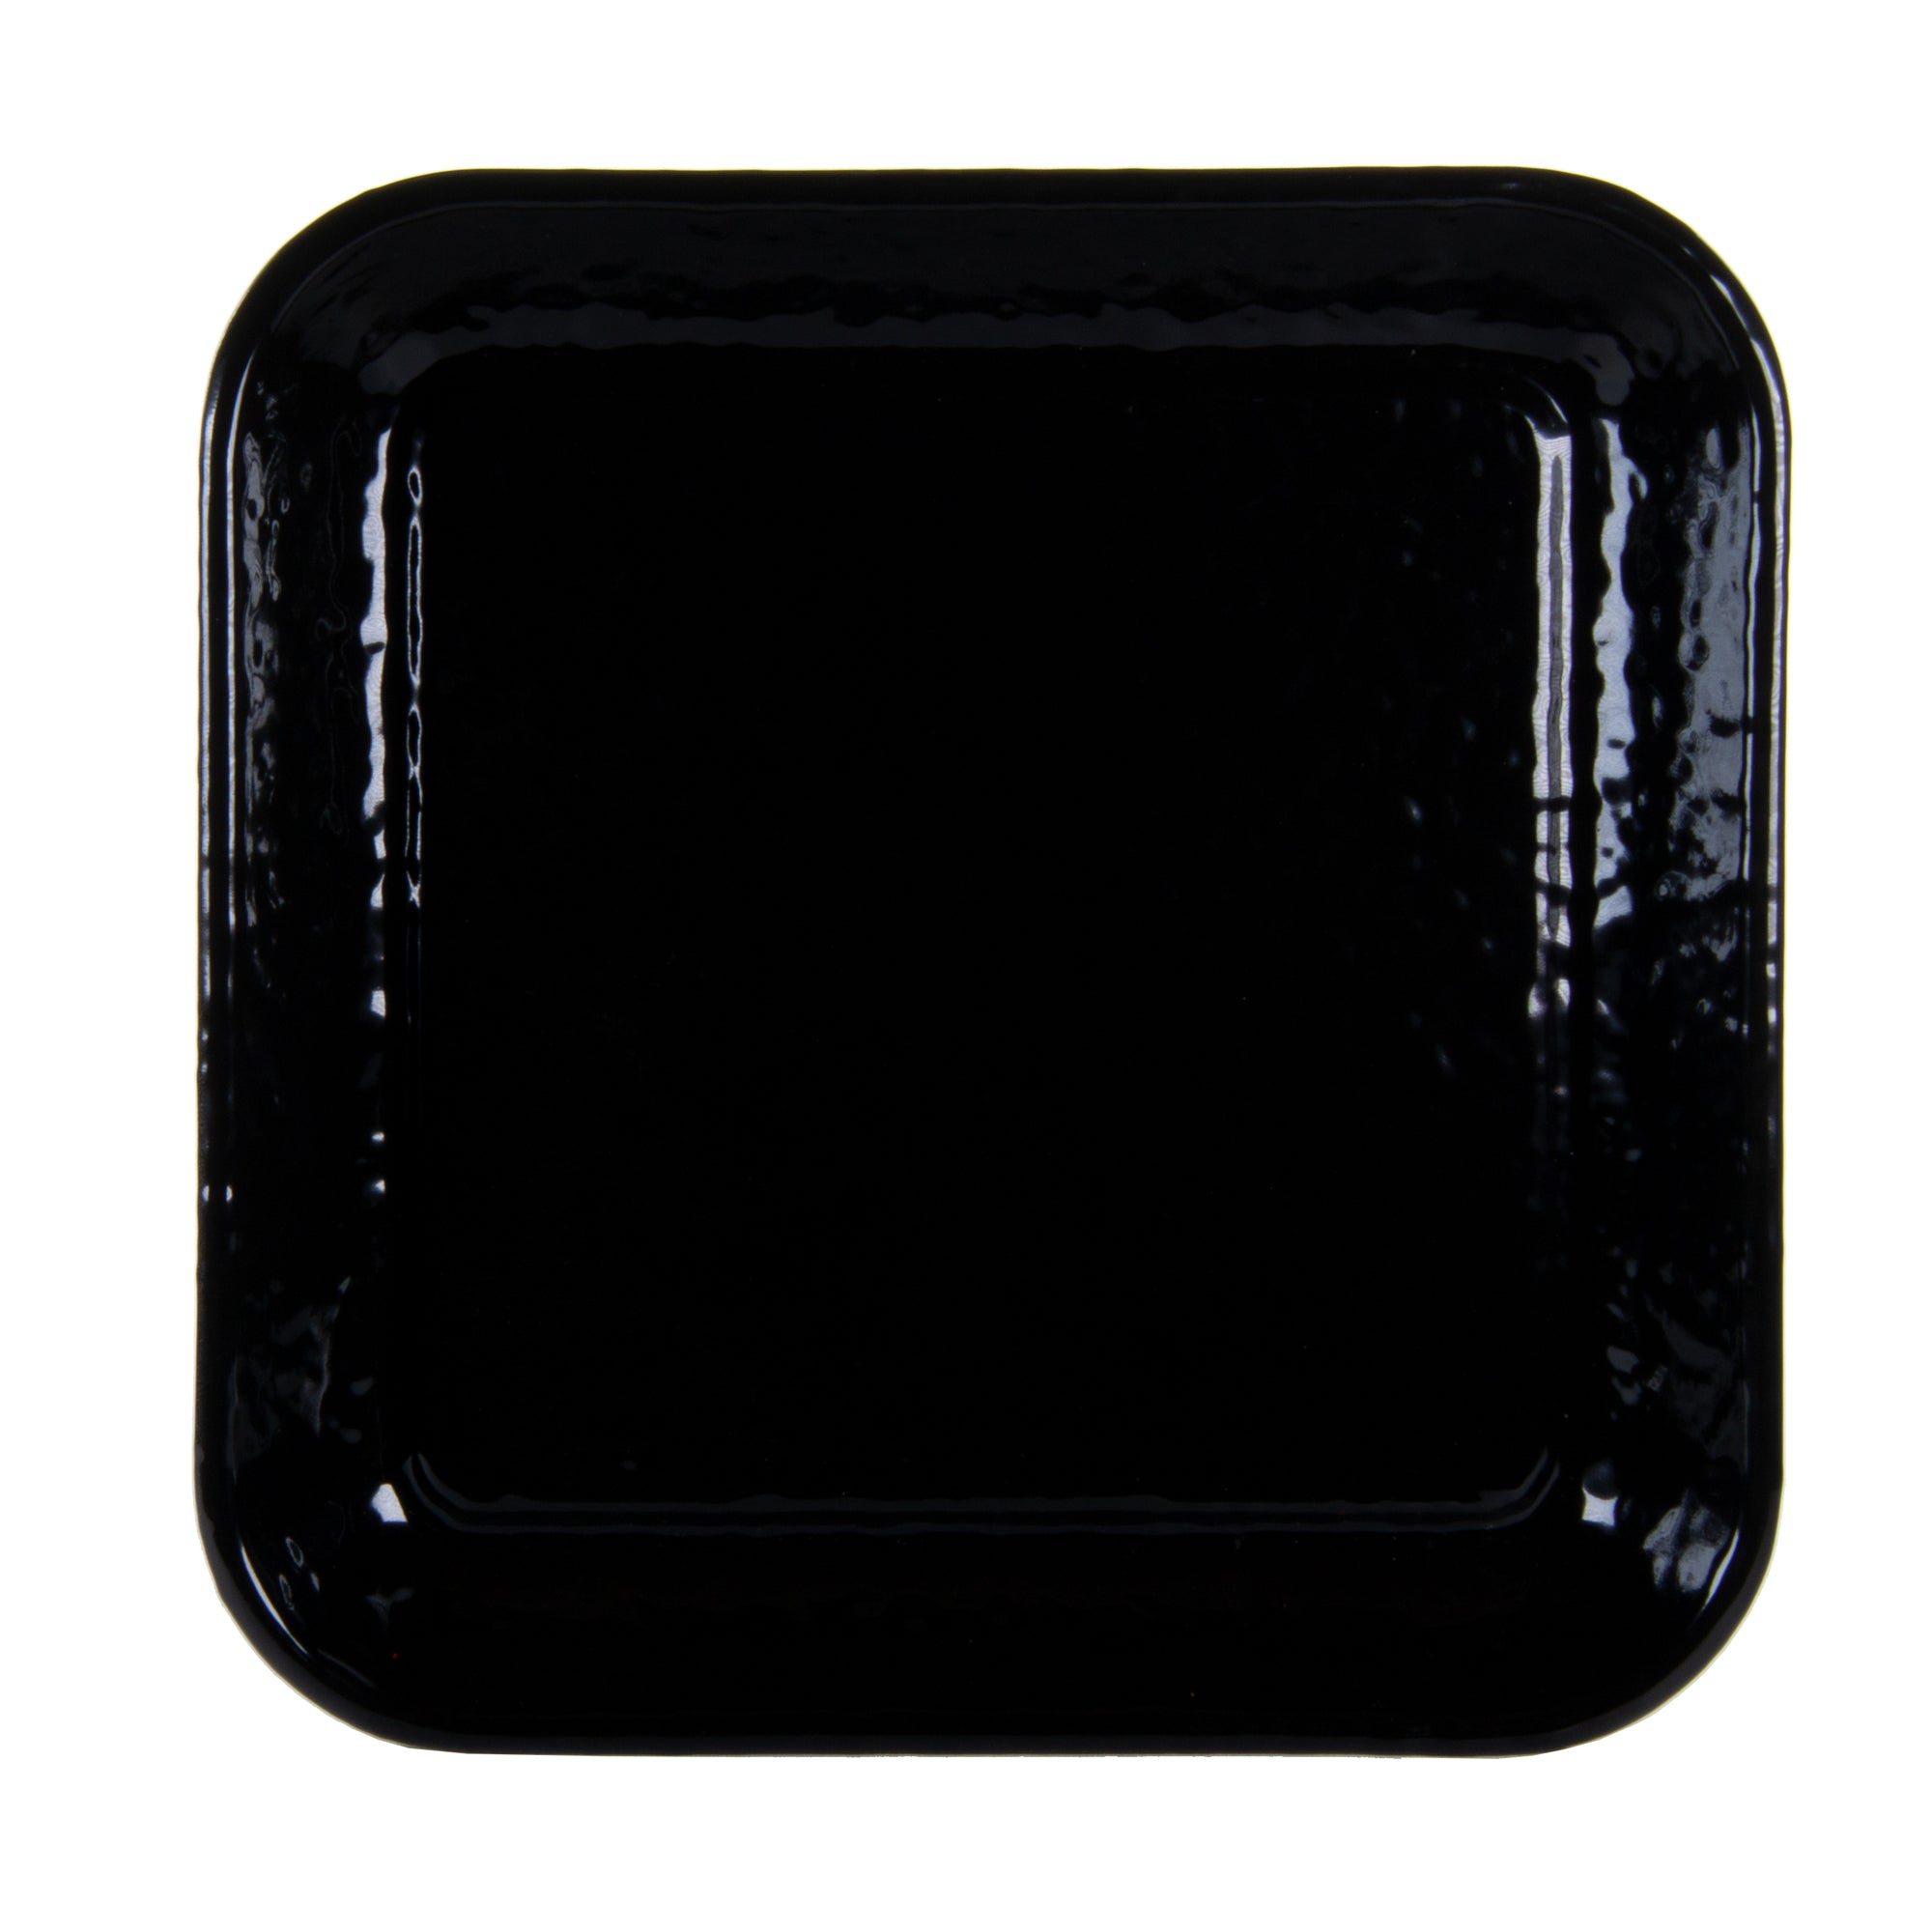 BK09S2 - Set of 2 Solid Black Square Trays Image 2